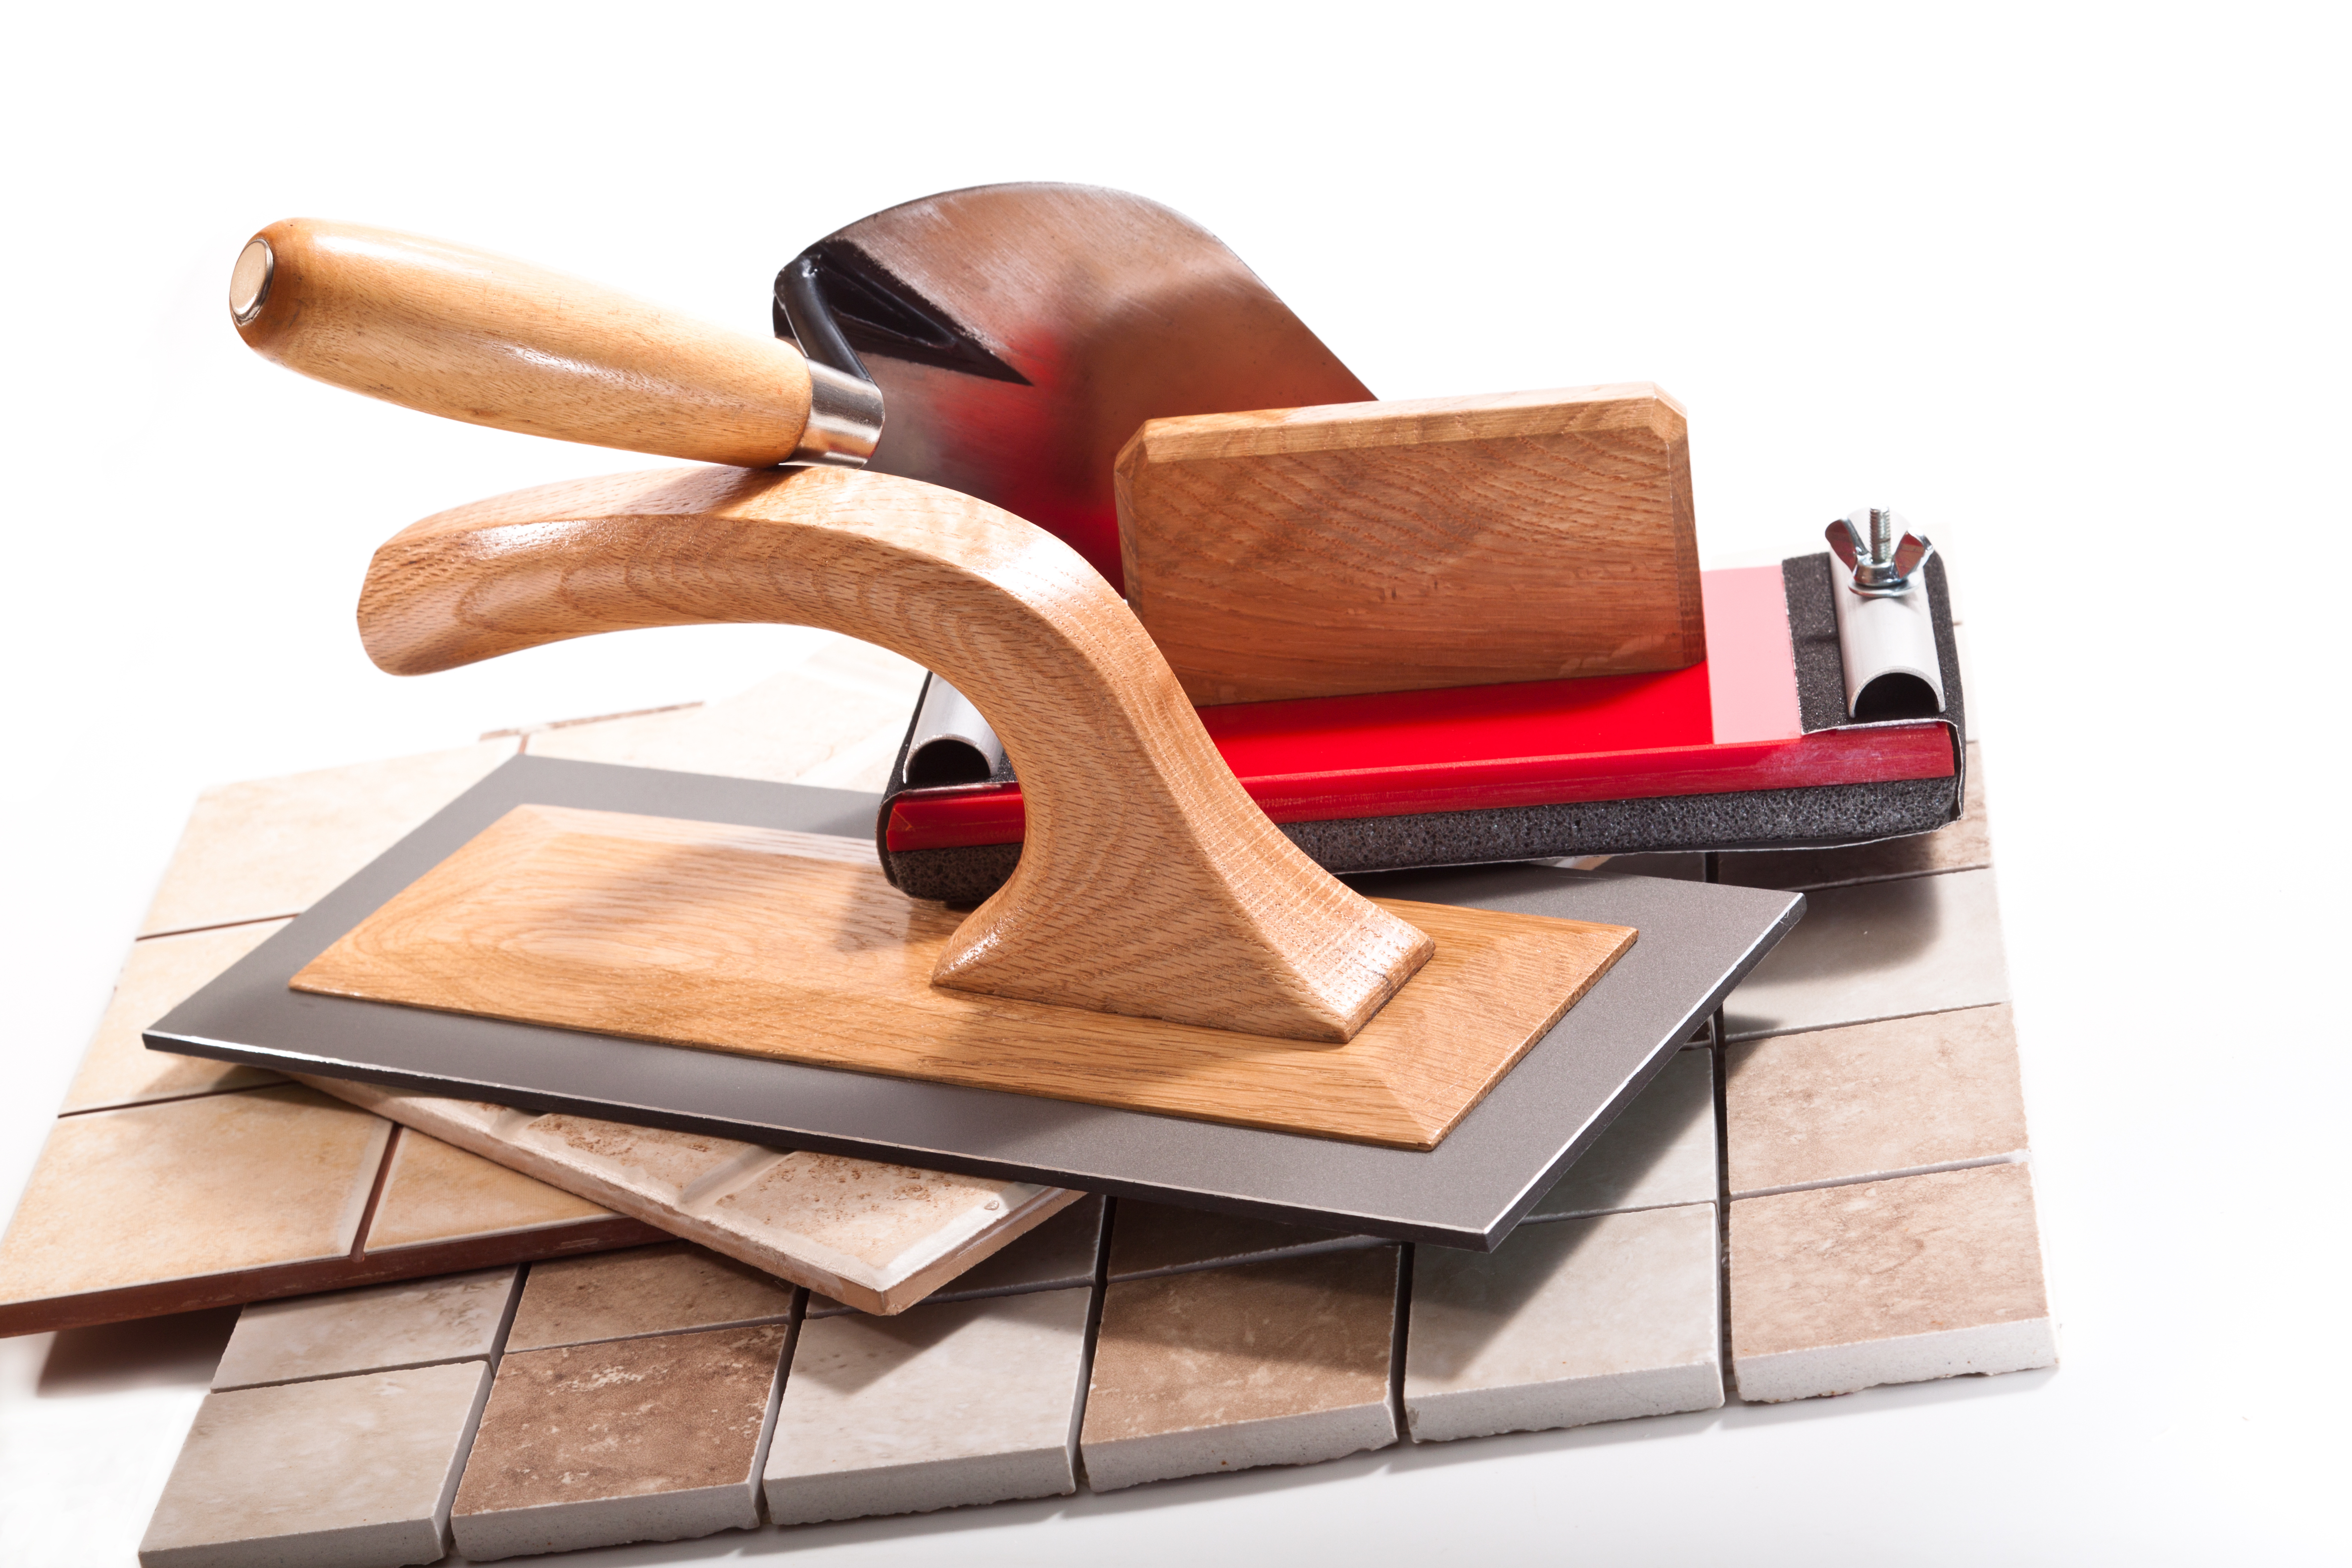 Essential Tools For Laying Tile And Tips On How To Use Them